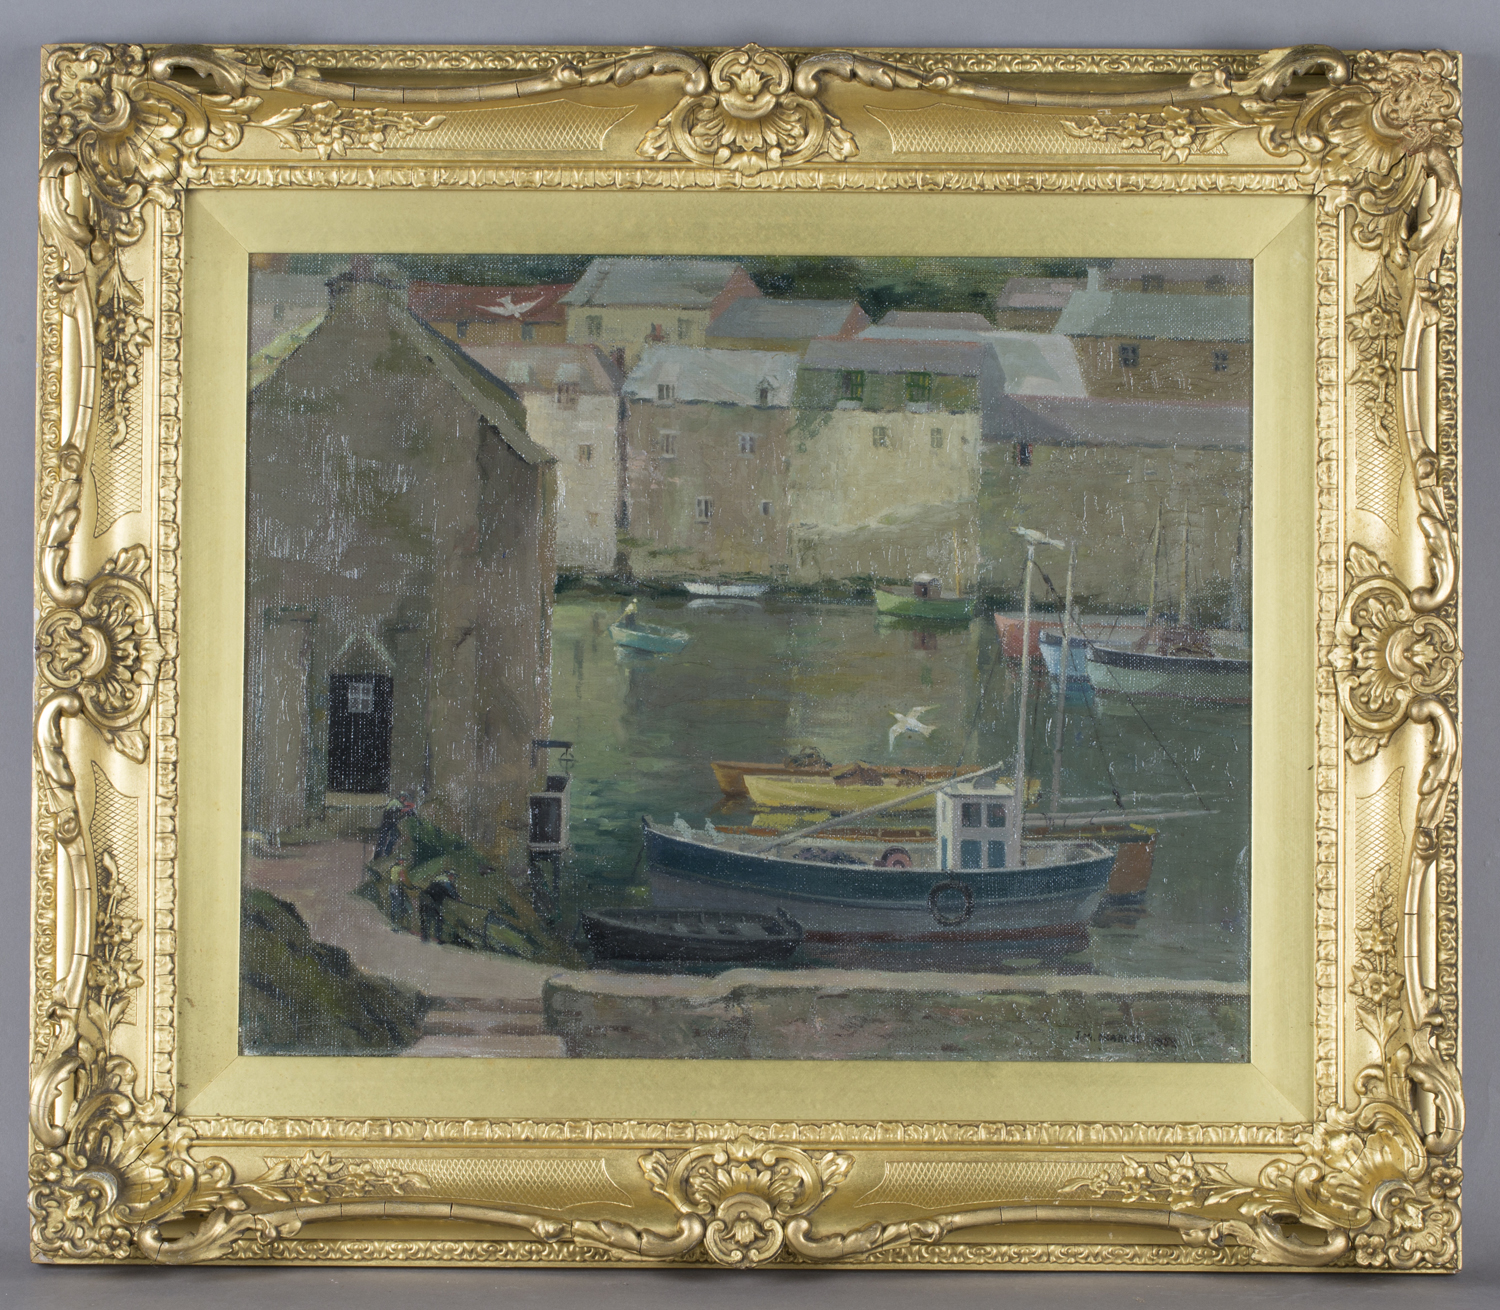 Lot 59 - J.M. Charles - Polperro Harbour, Cornwall, oil on canvas, signed and dated 1952, 39cm x 49cm, within